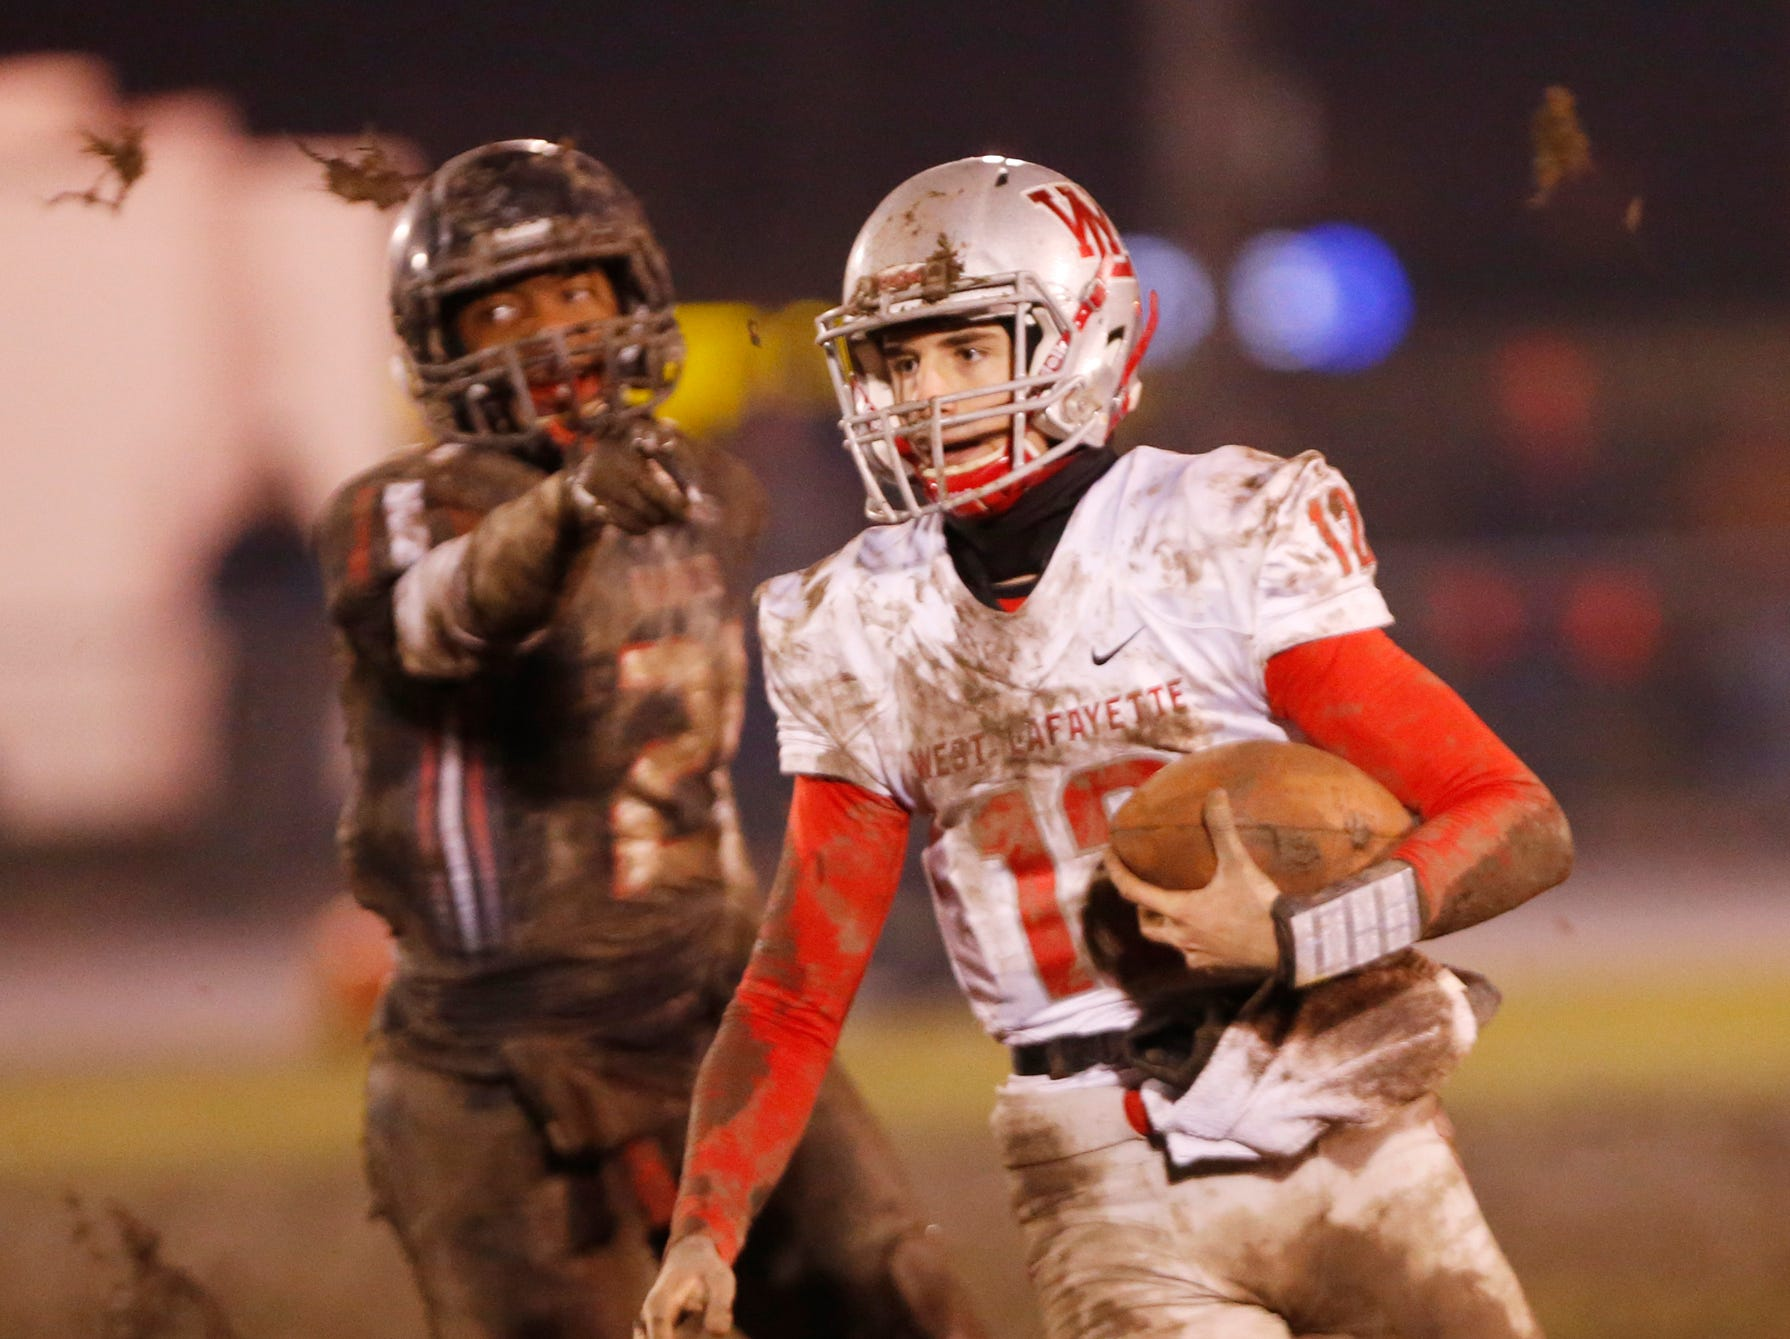 West Lafayette quarterback Kyle Adams with a fourth quarter carry against Ft. Wayne Bishop Luers Friday, November 16, 2018, in Ft. Wayne. West Lafayette scored 27 unanswered points in the second half to come from behind and defeat Bishop Luers 27-14.